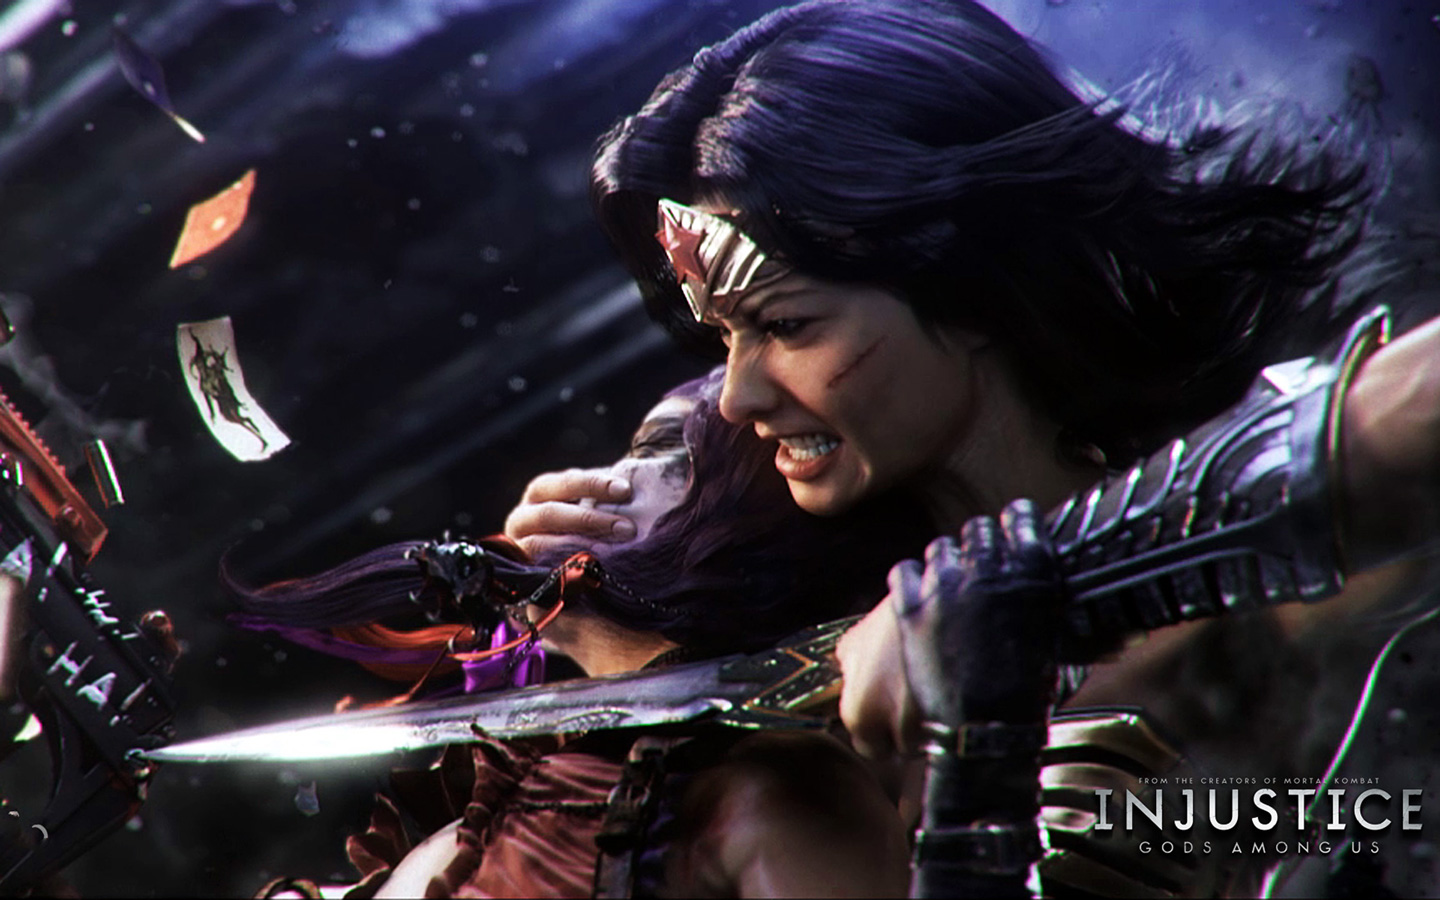 Free Injustice: Gods Among Us Wallpaper in 1440x900